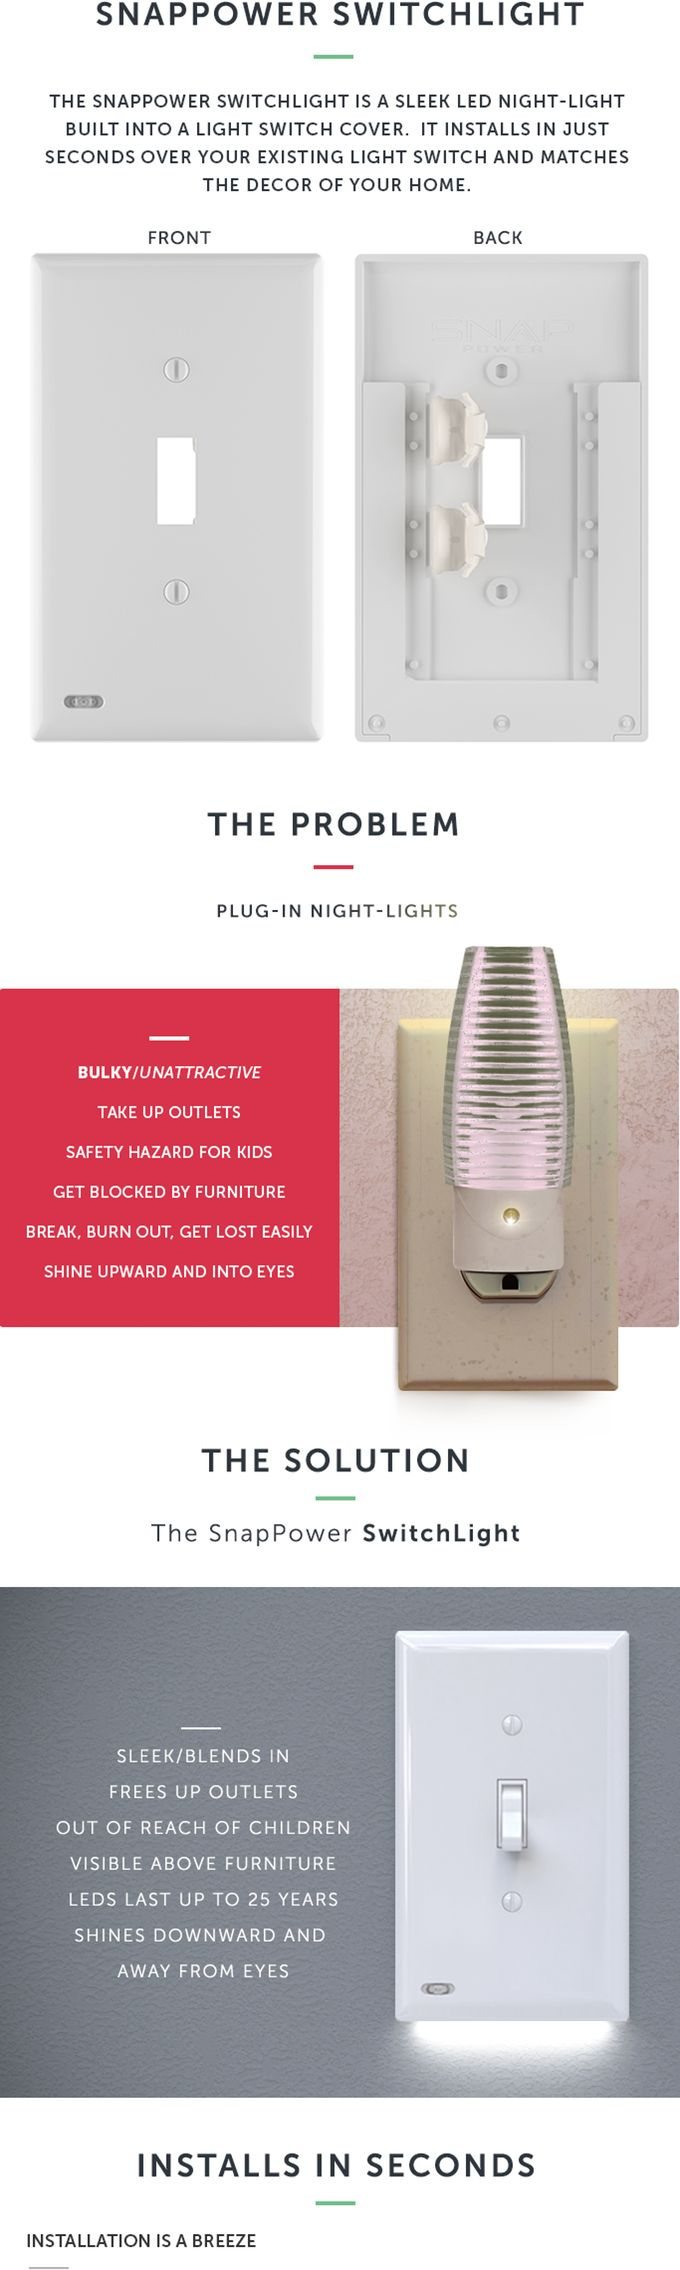 Led night light kickstarter - Jeremy Smith Is Raising Funds For Instantly Turn Your Lightswitch Into An Automatic Nightlight On Kickstarter The Snappower Switchlight Is A Light Switch